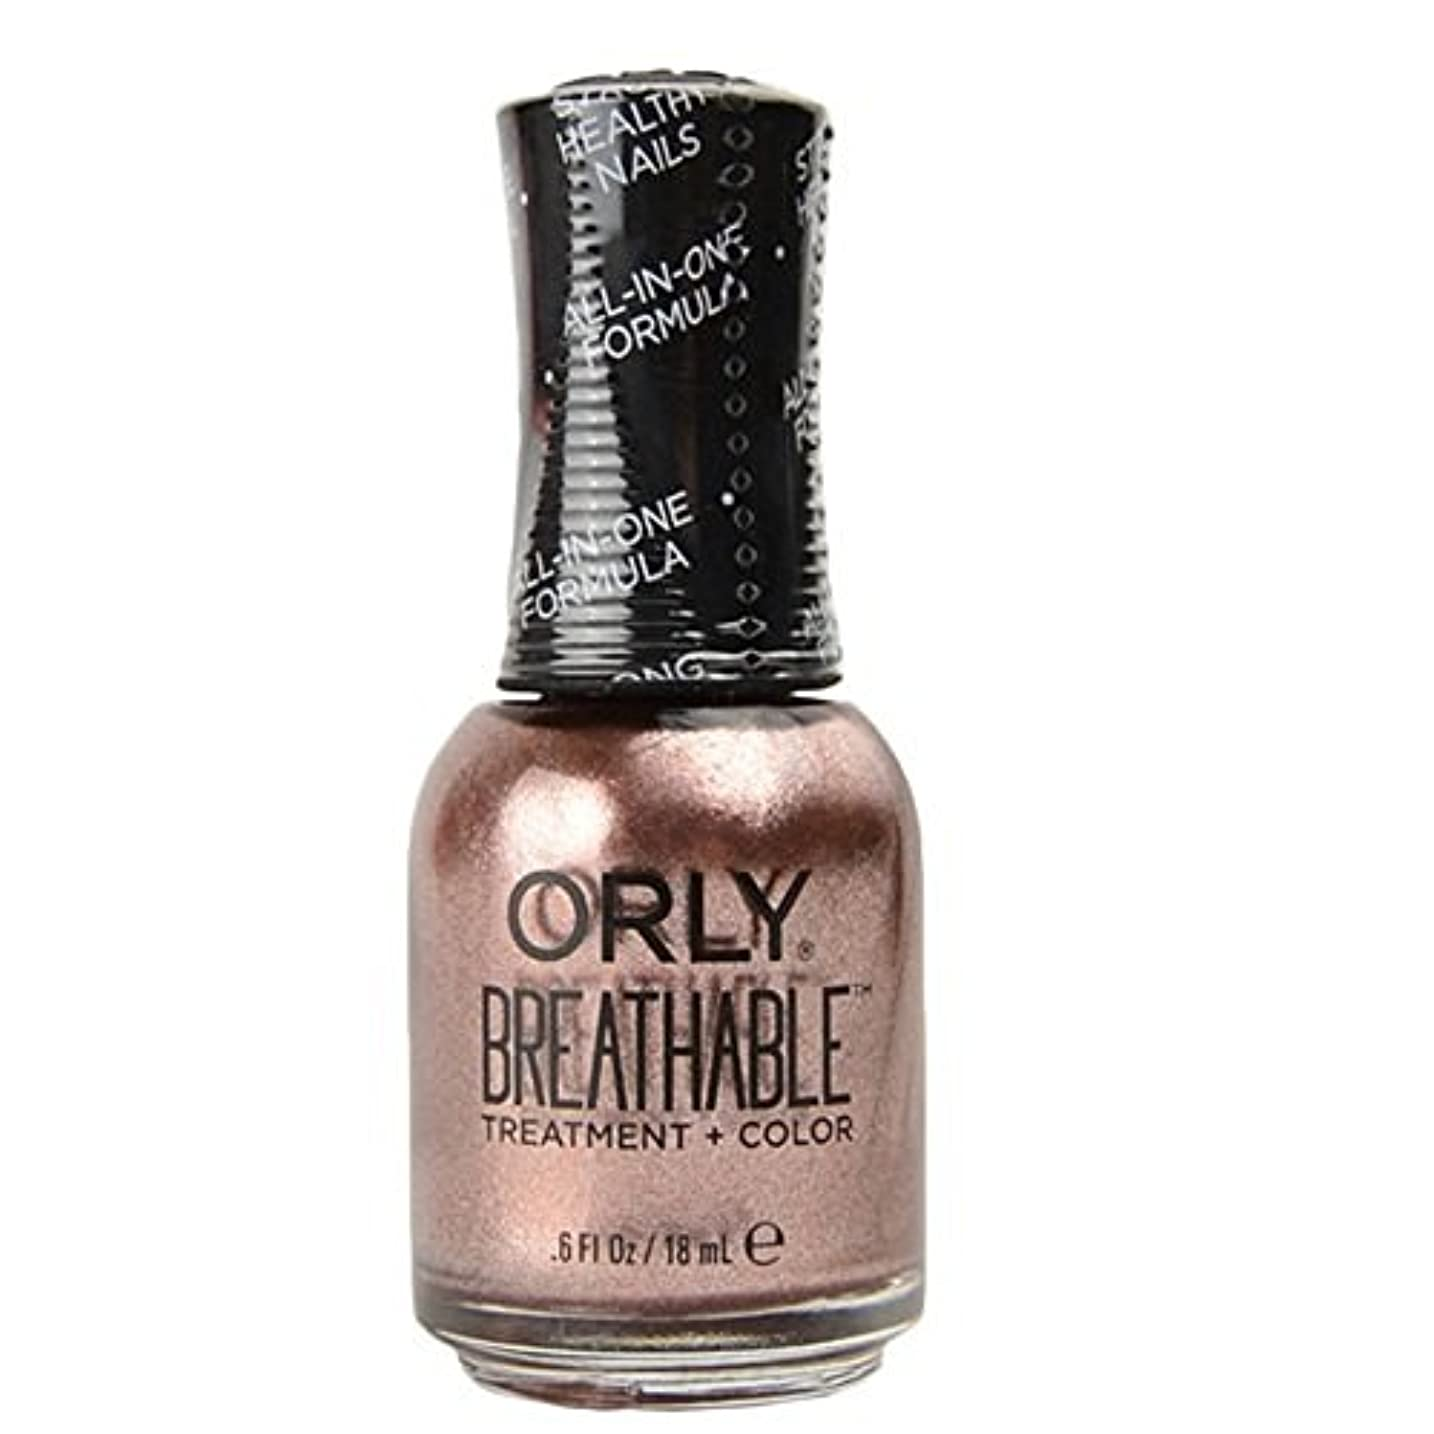 道に迷いました不正確気づくOrly Breathable Treatment + Color Nail Lacquer - Fairy Godmother - 0.6oz / 18ml